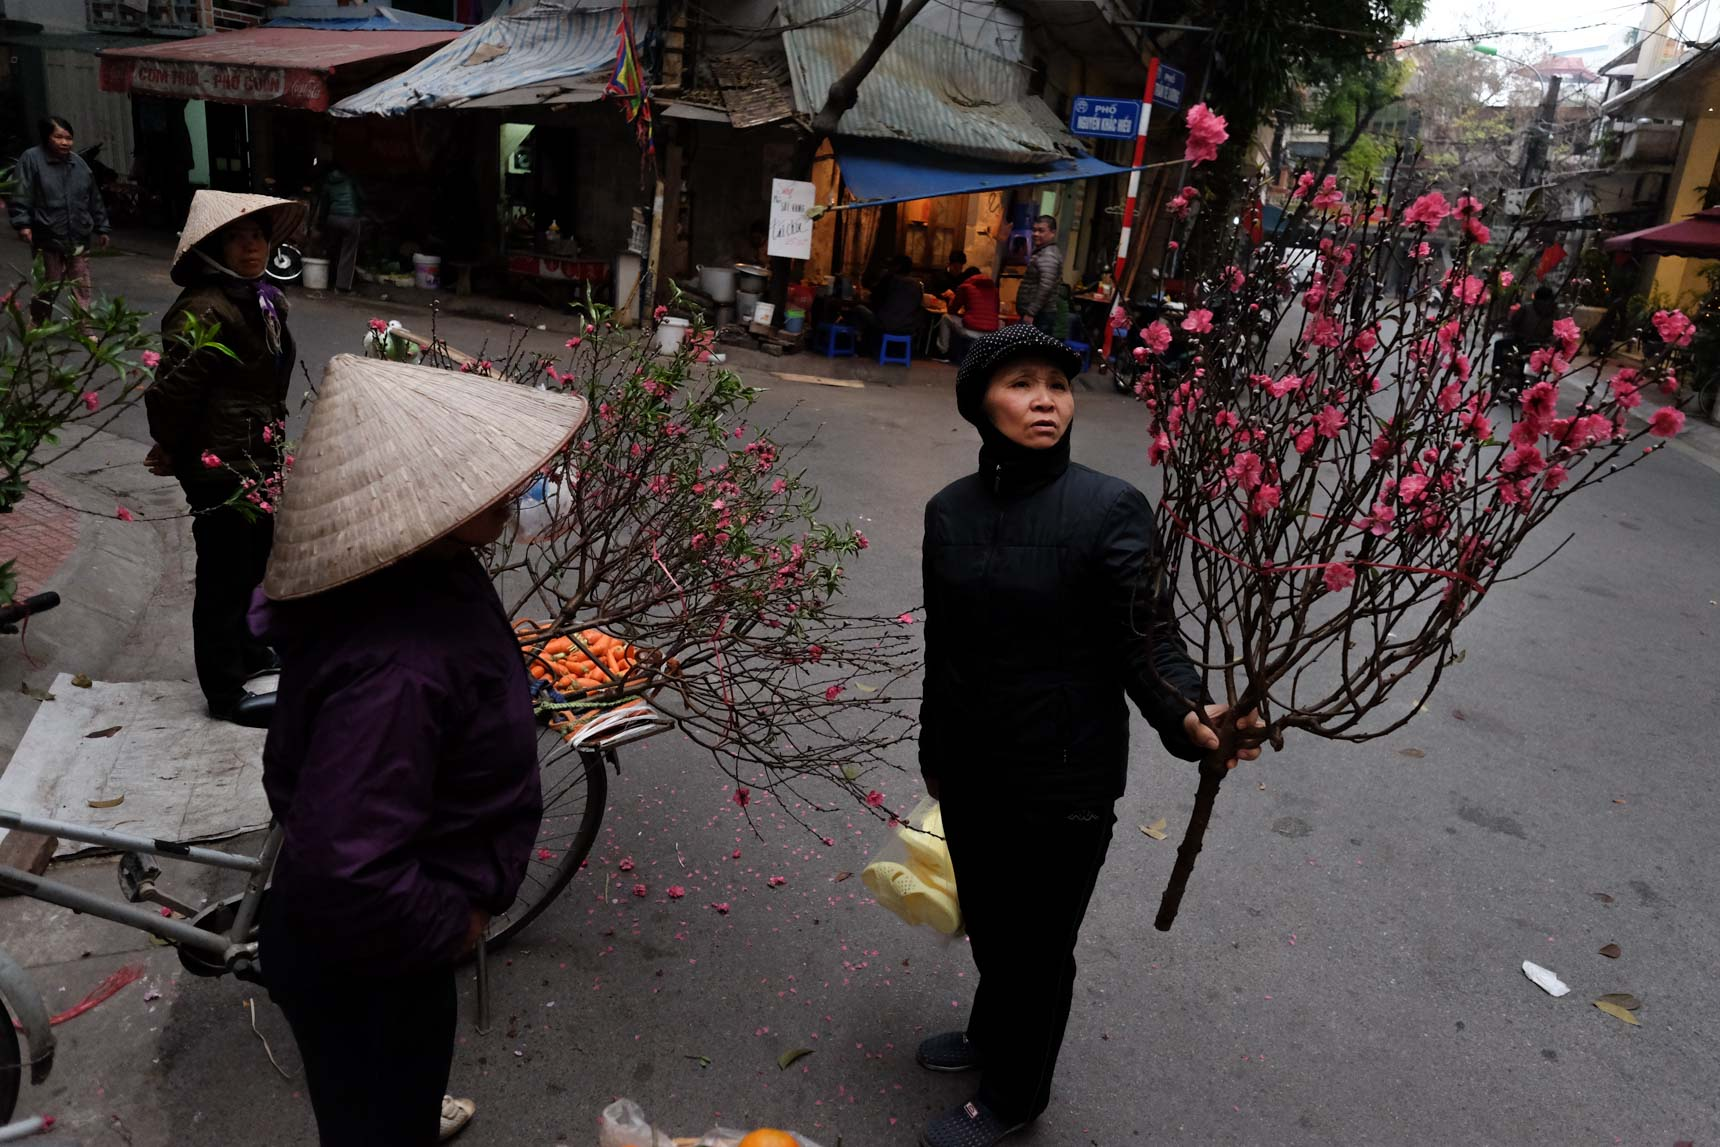 Shopping for Flowers during Tet New Year